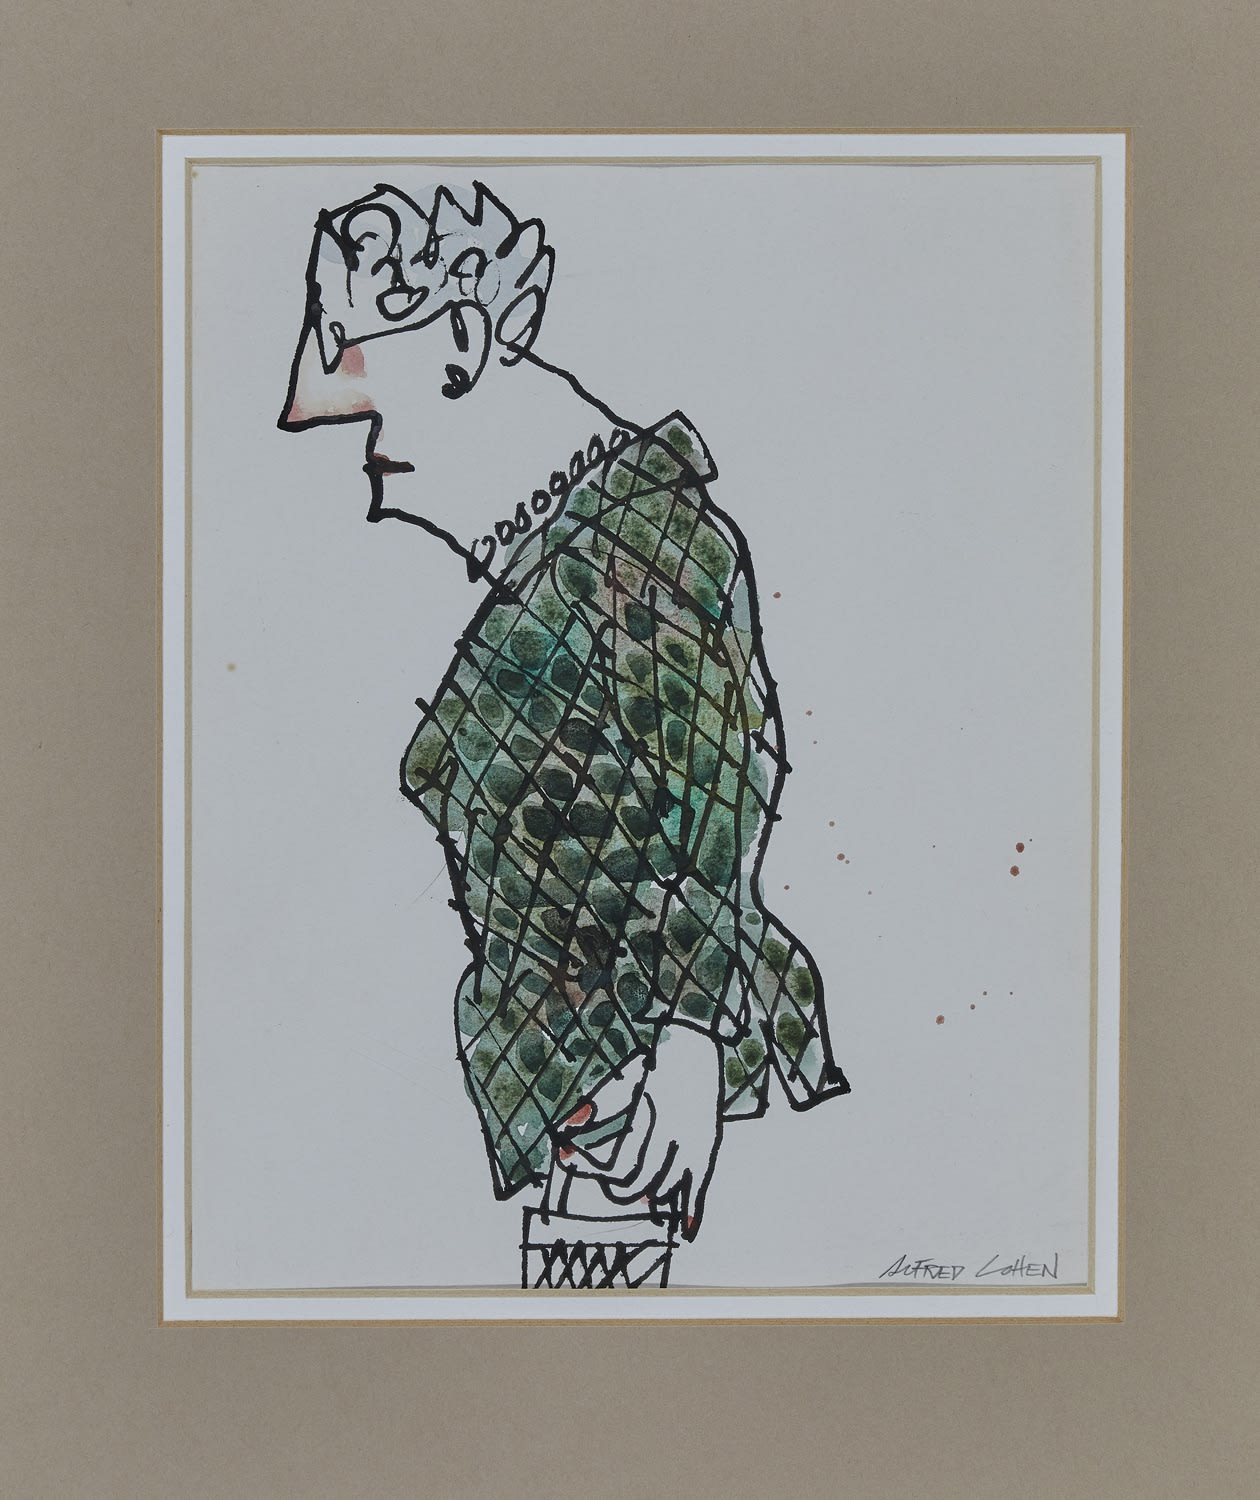 Alfred Cohen (1920-2001) Quilted Jacket c. 1980 Ink and watercolour 25.4 x 20.3 cm Private Collection © Estate of Alfred Cohen 2020